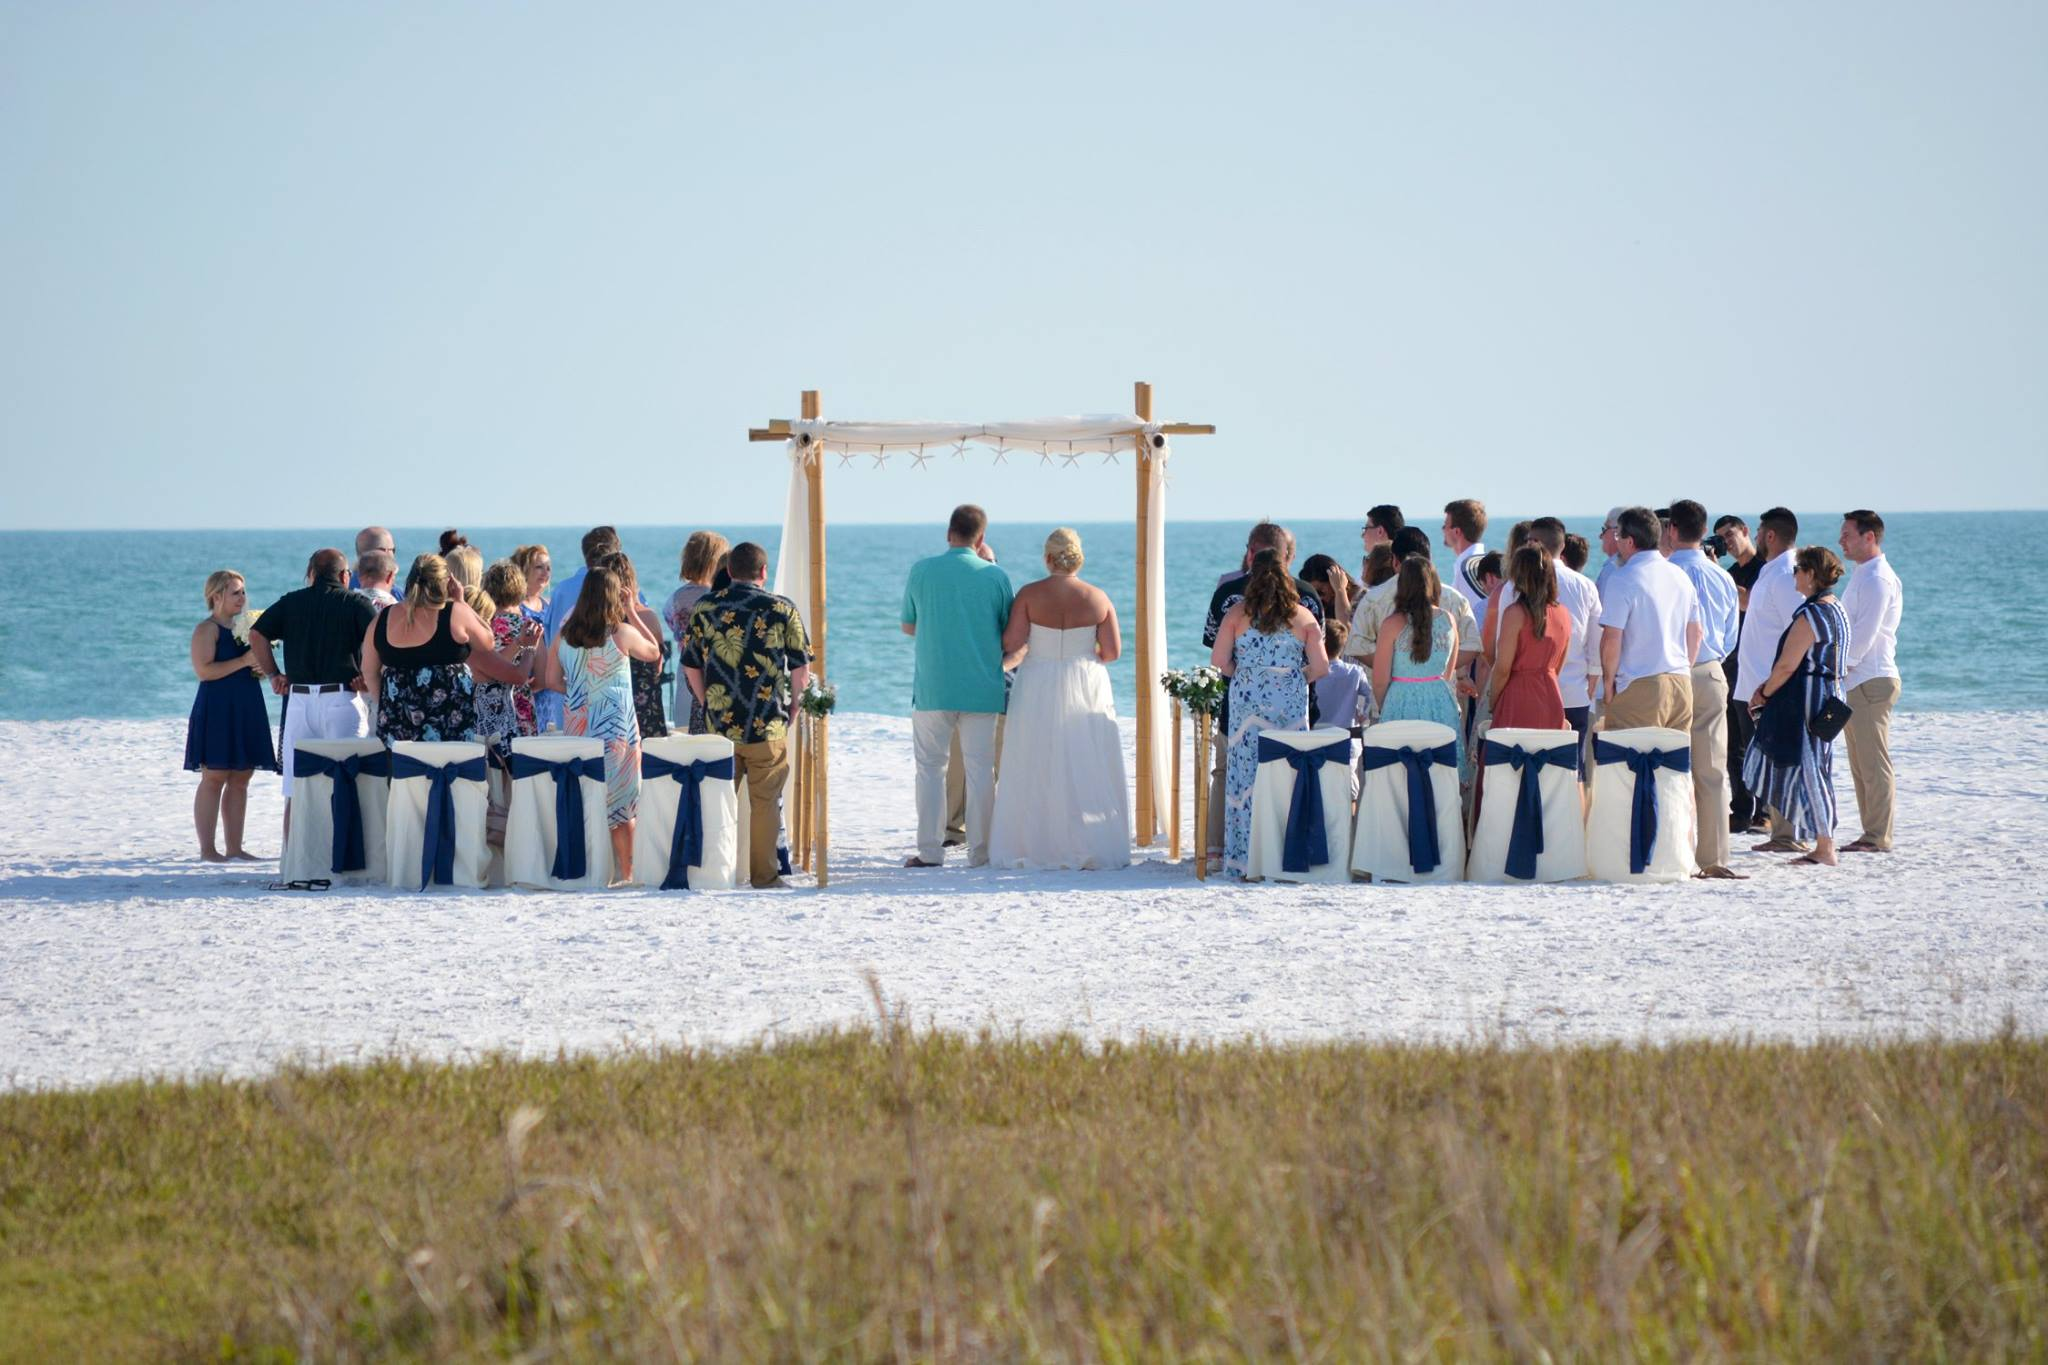 Couple saying vows at Gulf beach wedding